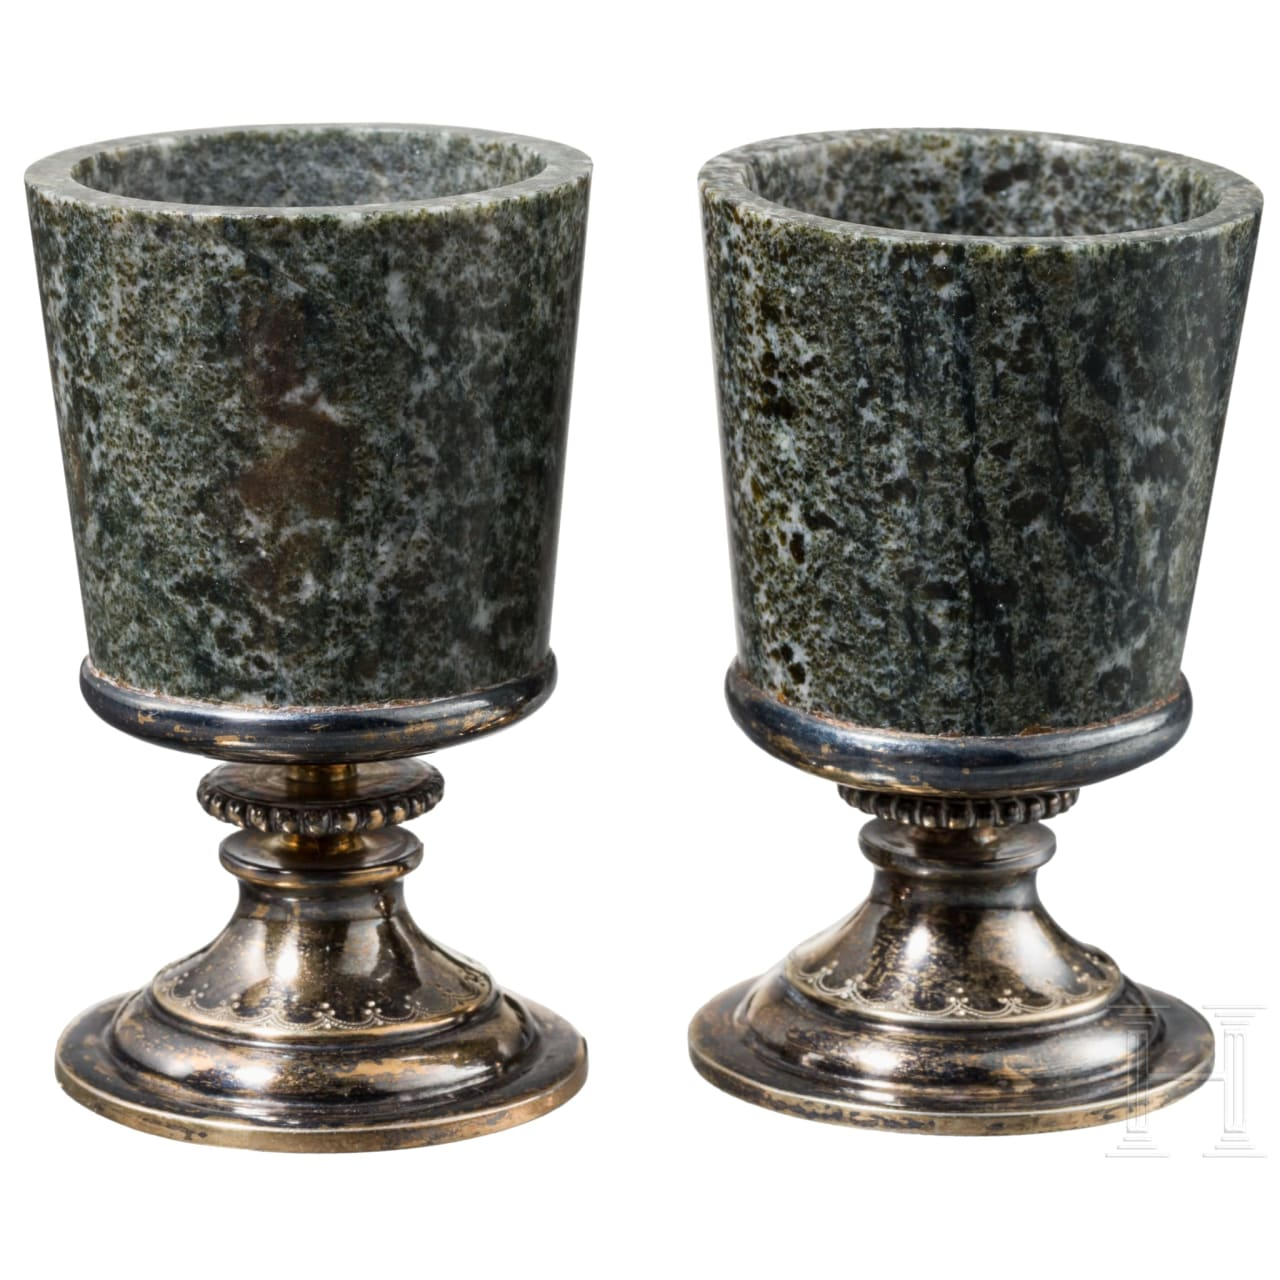 A pair of small silver mounted cups in serpentine, Stockholm, 1901